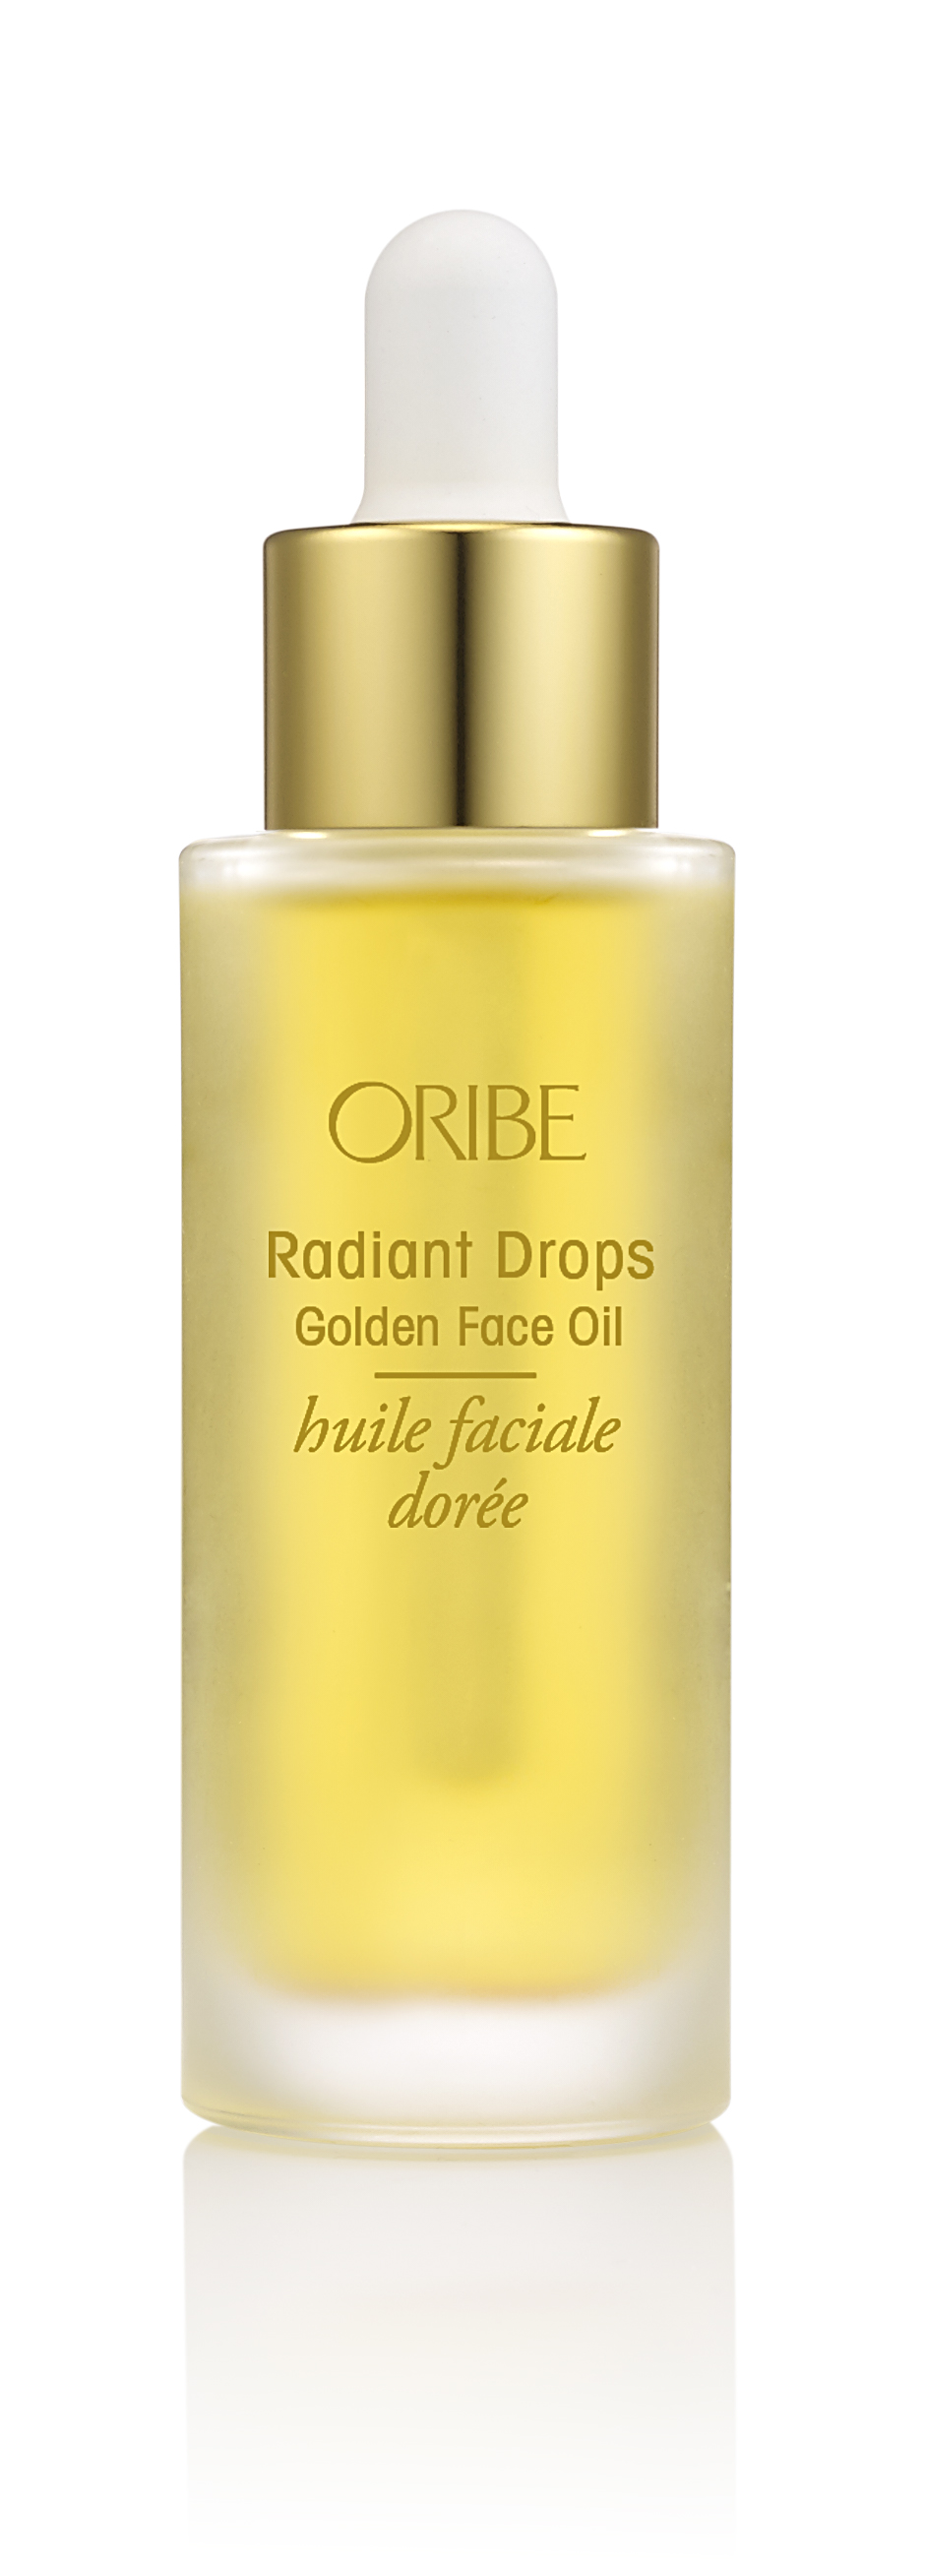 Radiant Drops Golden Face Oil: Concentrated blend of 13 natural oils melts into skin to give skin a healthy glow, leaving it soft, smooth and protected. Contains algae extract, rose hips oil, sea buckthorn berry oil and more.